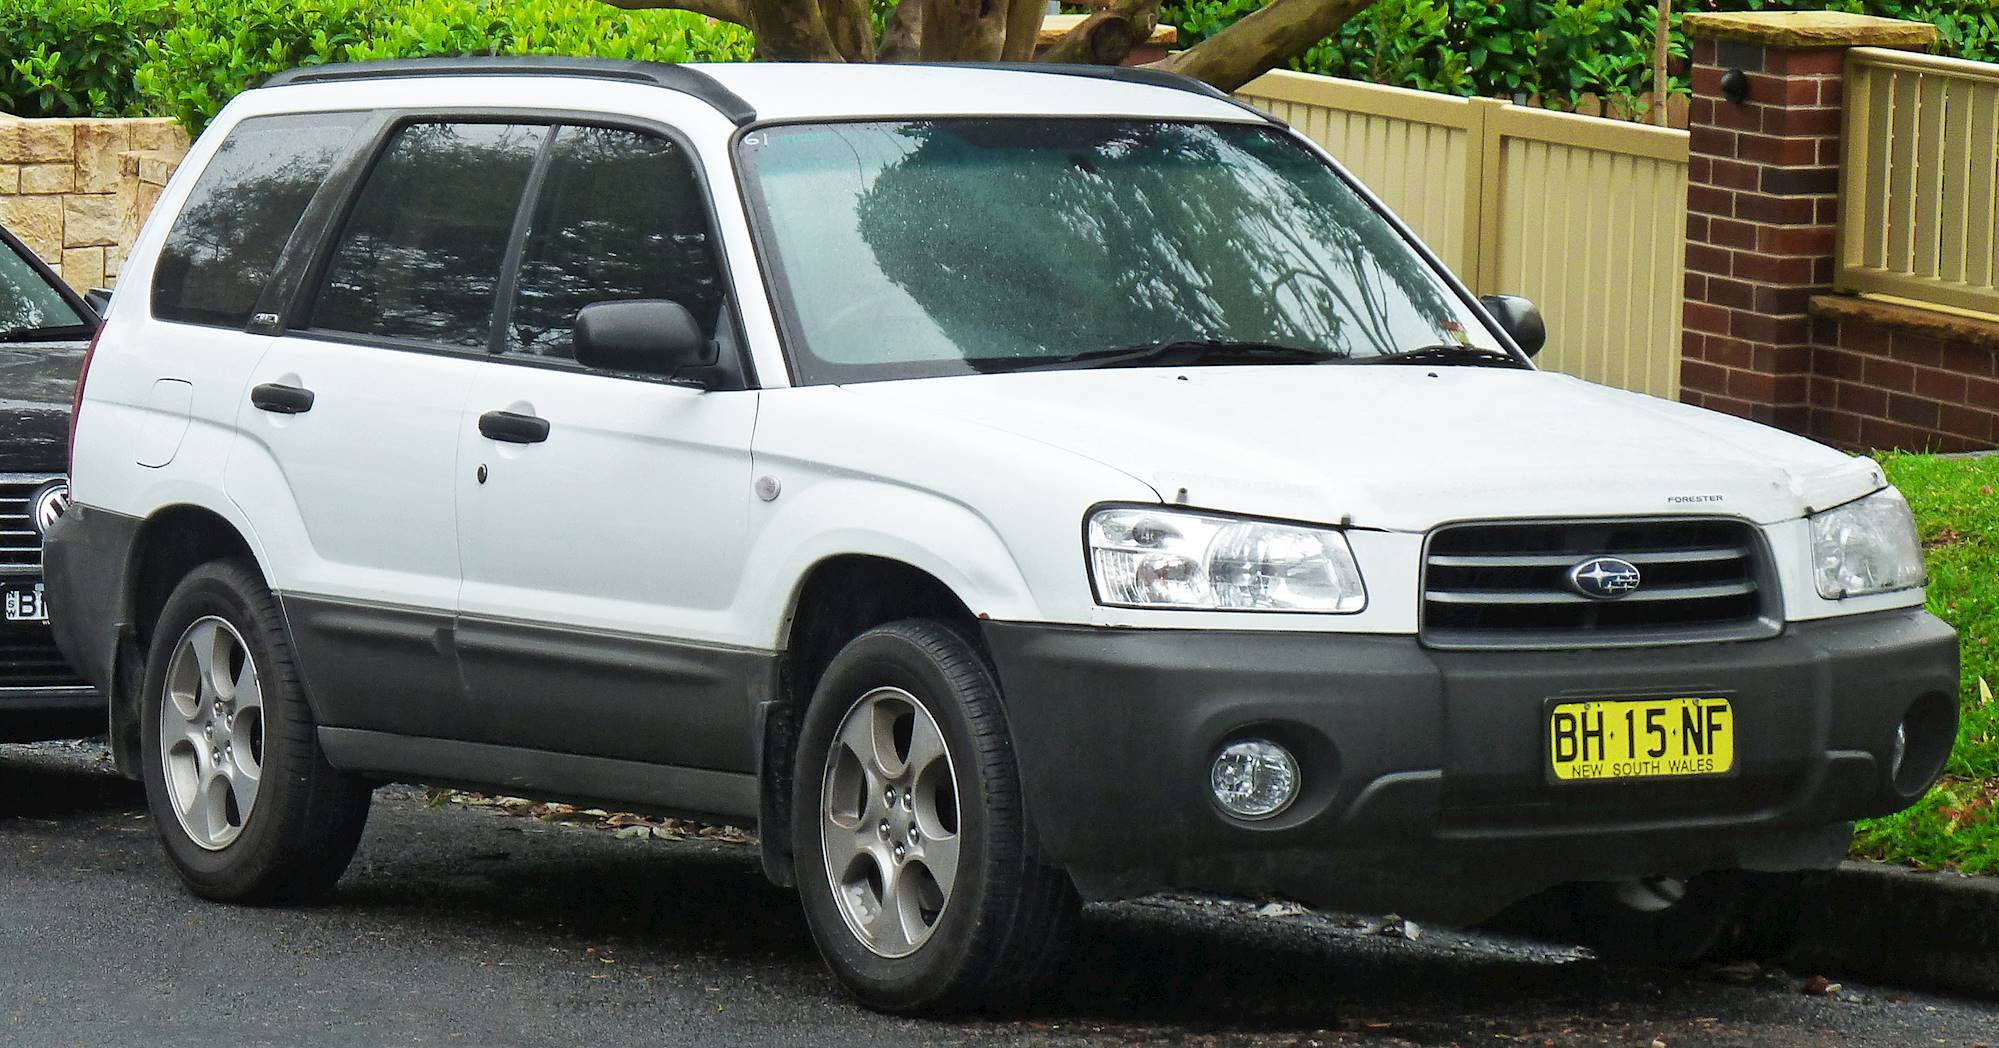 2002 Subaru Forester Transmission Problems Fuel Filter Location Manual User Guide That 1999x1048